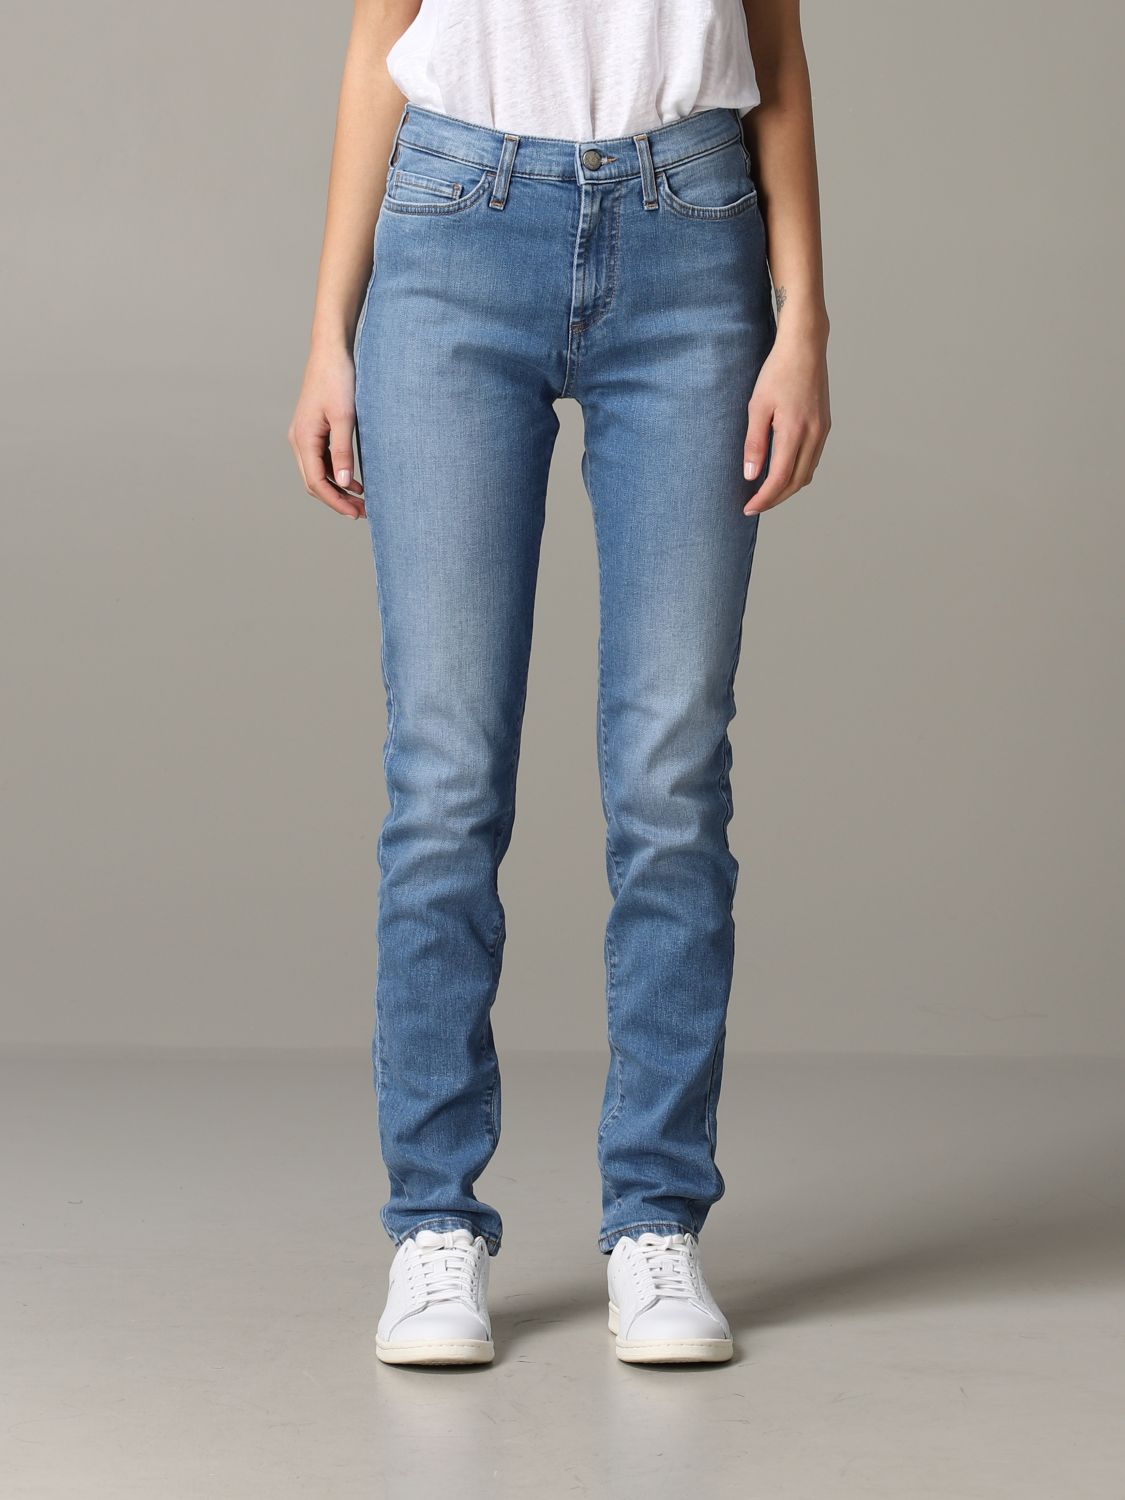 Roy Rogers Regular Fit Jeans Jeans Roy Rogers Women Denim Jeans Roy Rogers P20rnd166d3171370 Giglio En Lee women's instantly slims classic relaxed fit monroe straight leg jean. roy rogers regular fit jeans